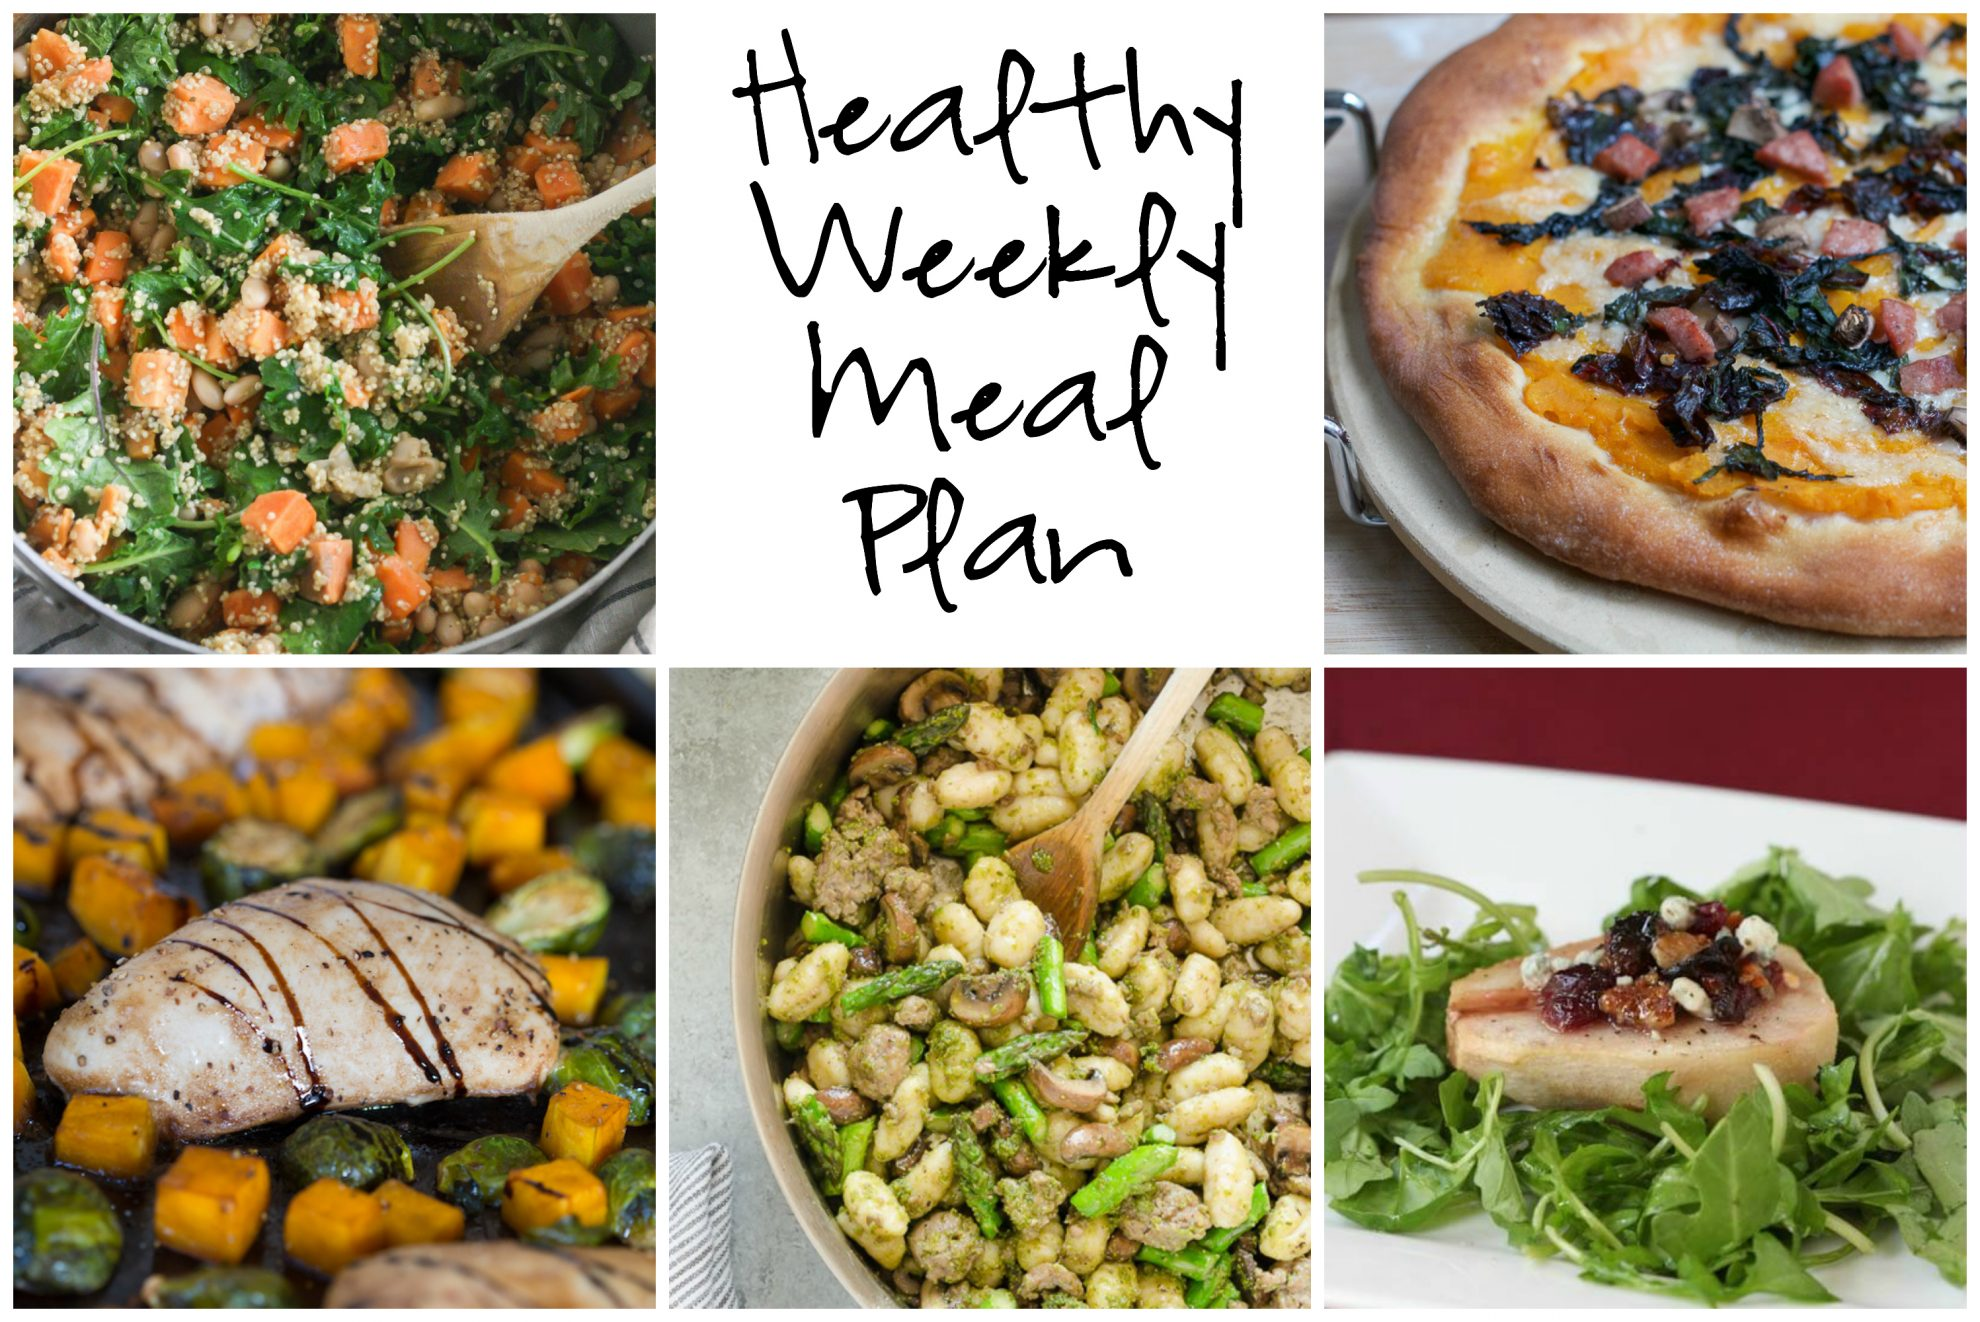 Healthy Weekly Meal Plan 11.5.16! A healthy weekly meal plan featuring Roasted Butternut Squash Pizza, One Pot Sweet Potato Kale Quinoa Skillet, Pesto Gnocchi, Maple Balsamic Chicken with Brussels Sprouts and more!